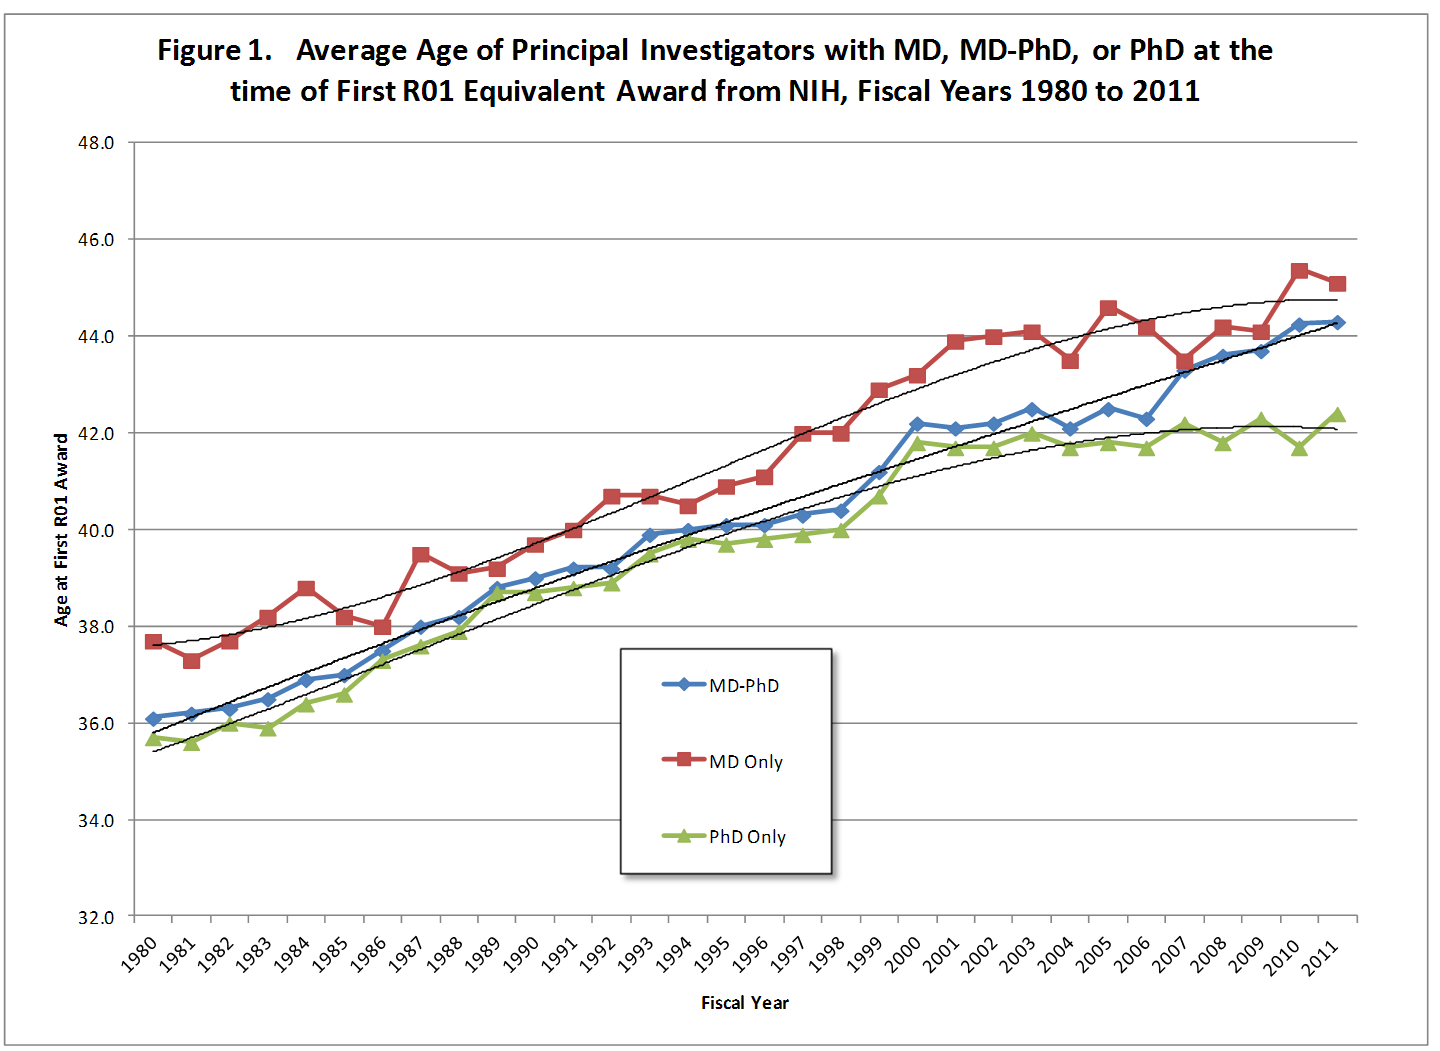 shows the average age of investigators at the time of first R01 steadily increasing from 1980 to 2011